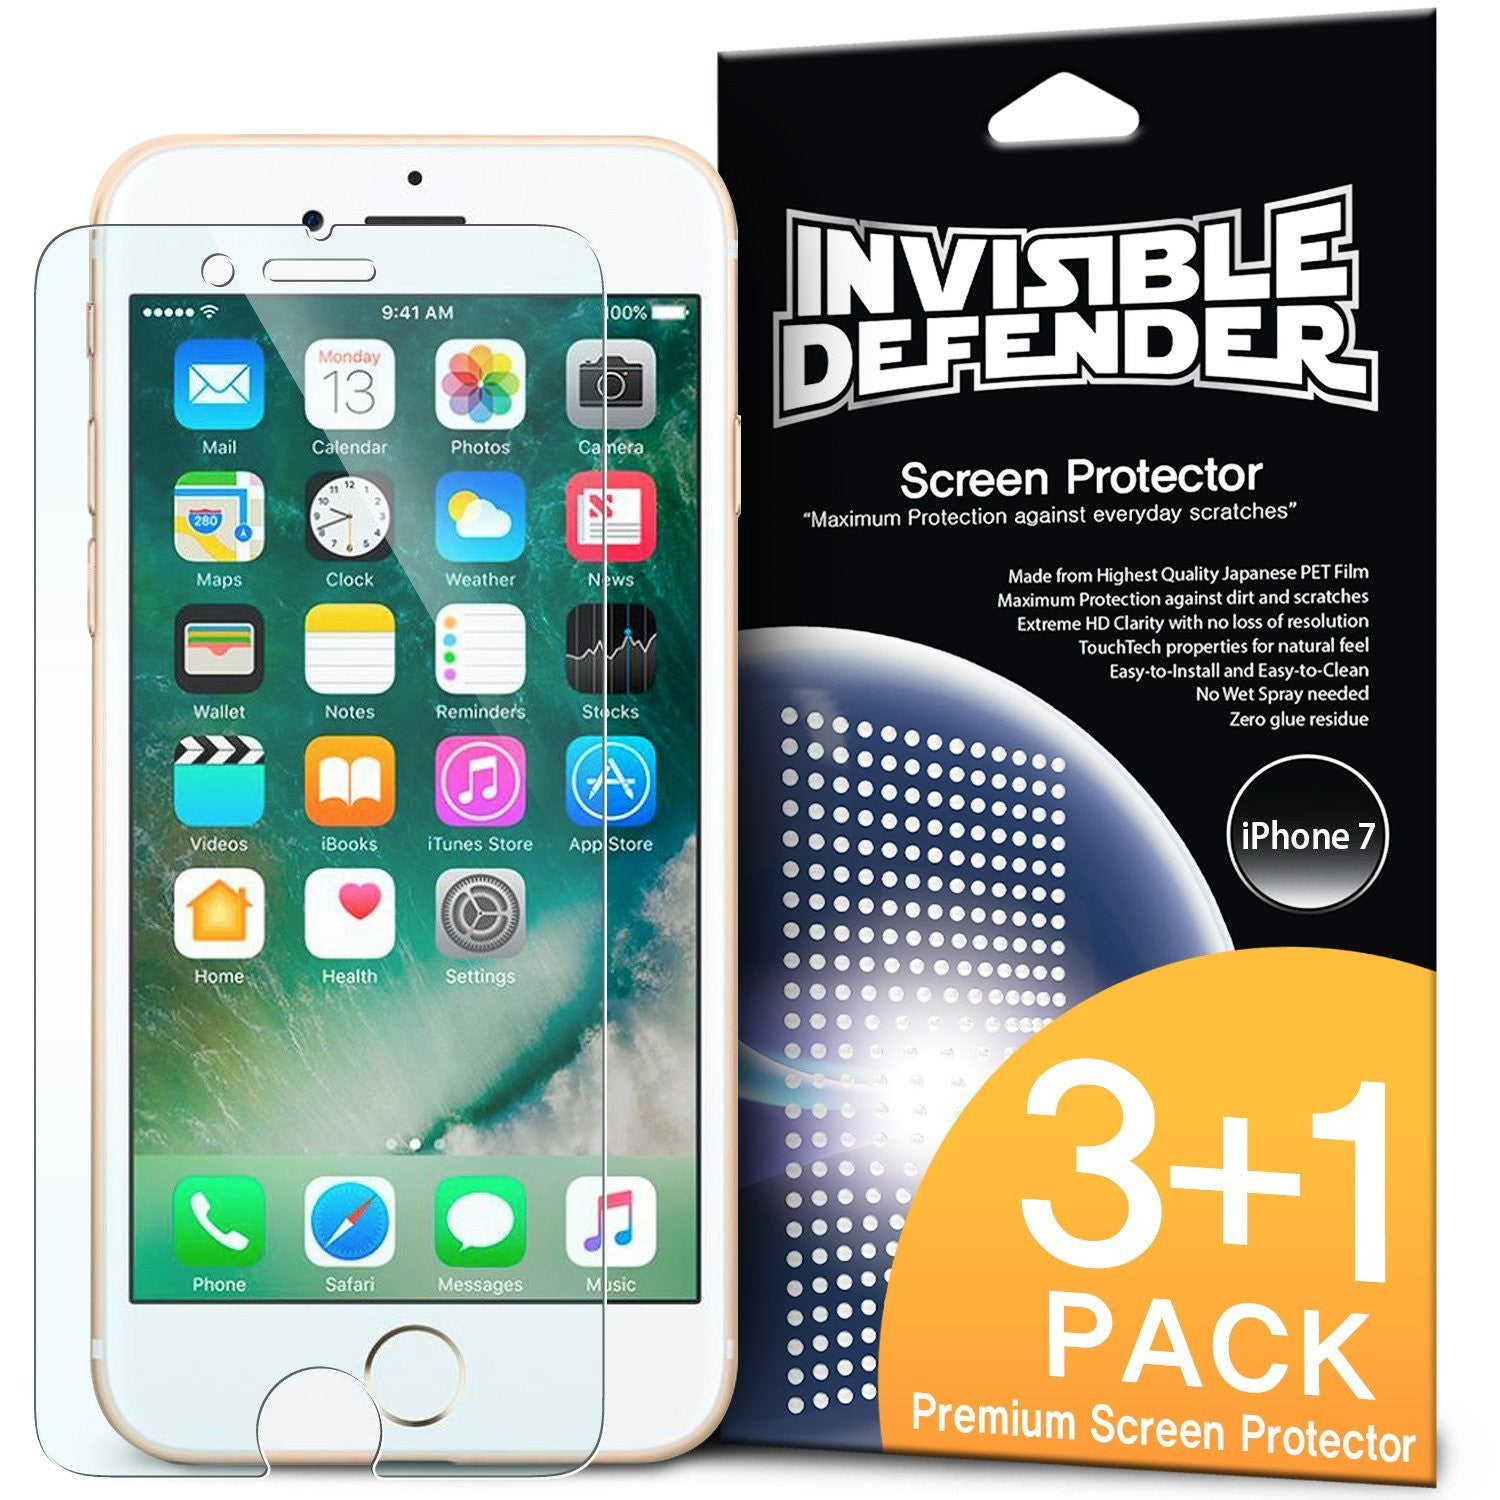 ringke invisible defender screen protector film for iphone 7 plus 8 plus main 4 pack